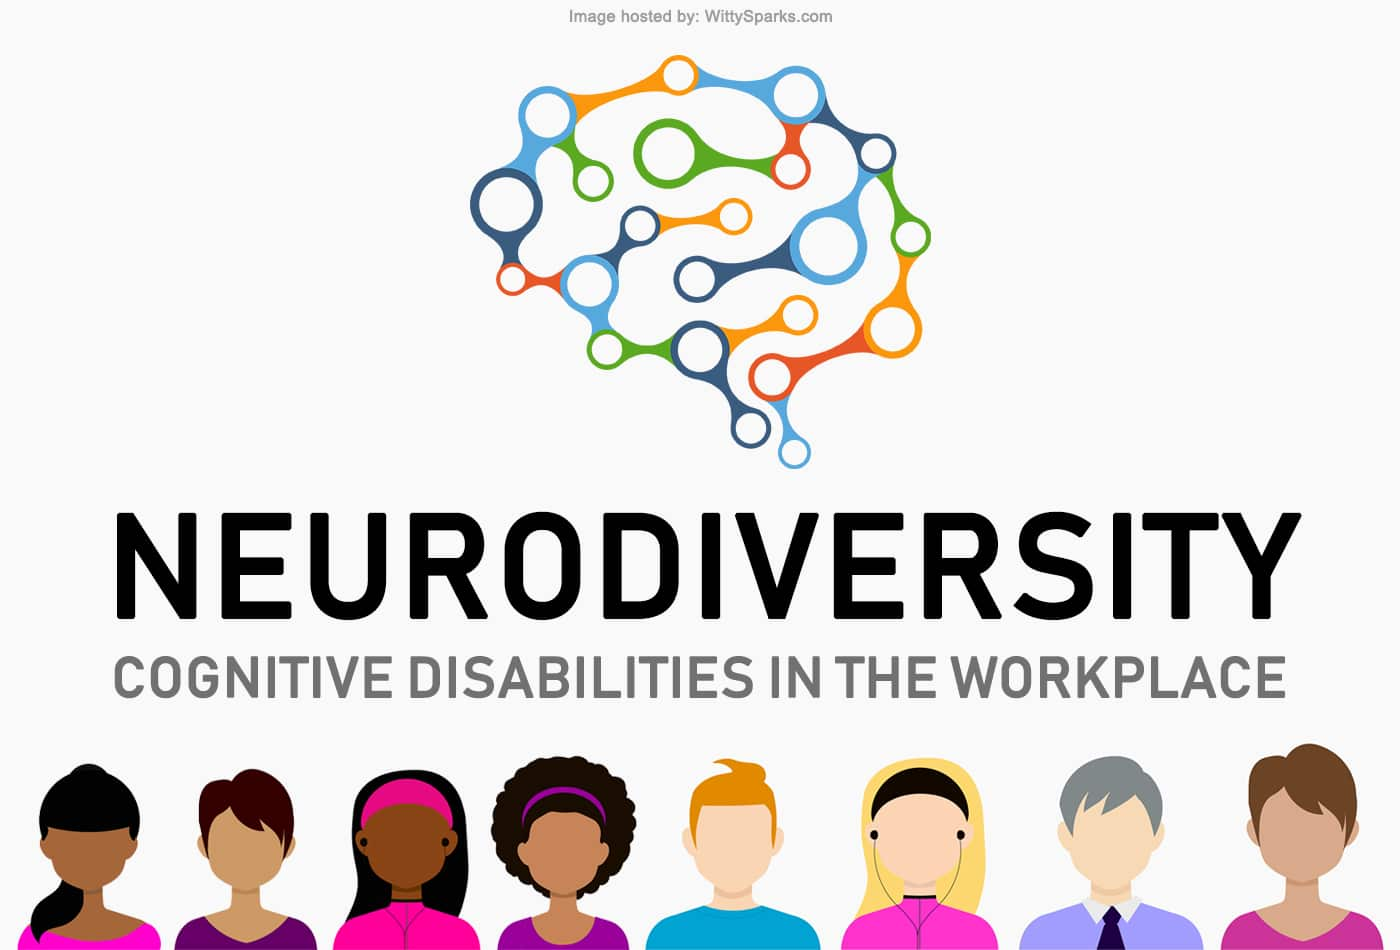 Neurodiversity: Cognitive Disabilities in the Workplace